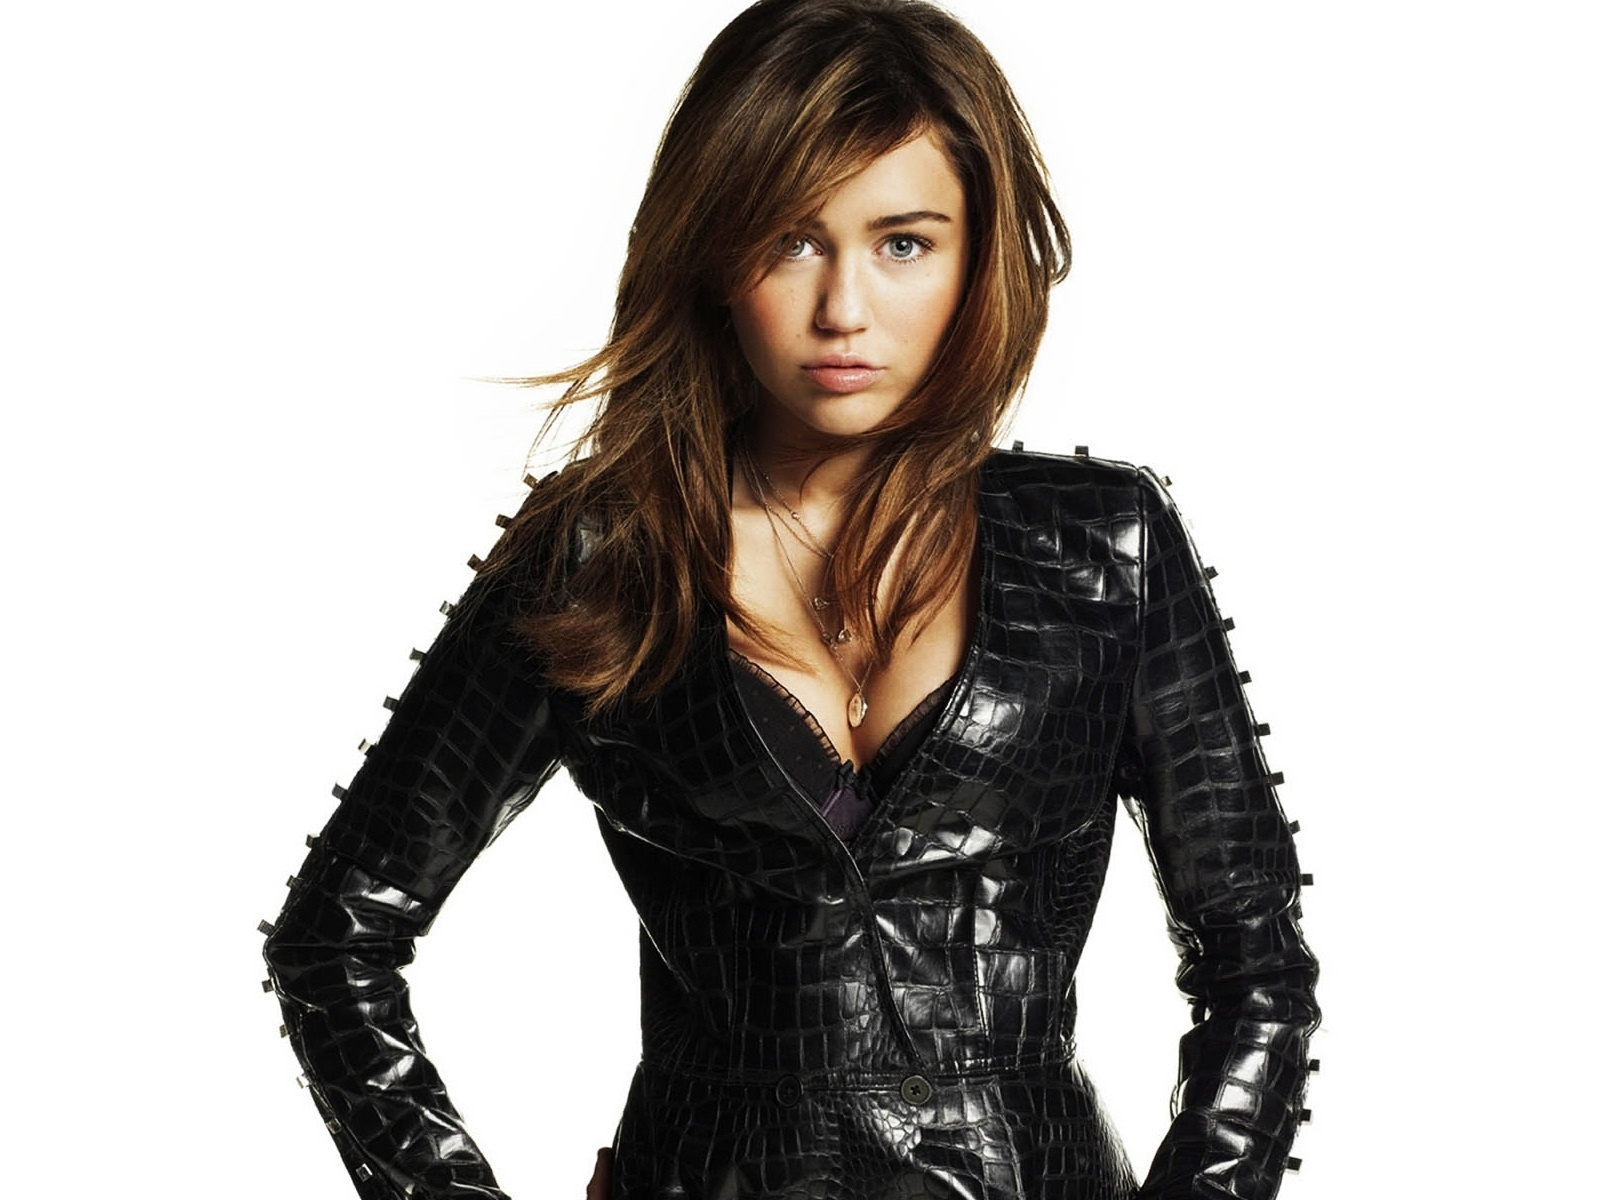 Miley Cyrus: Freaking Spot: Miley Cyrus Full HD 1080p Wallpapers